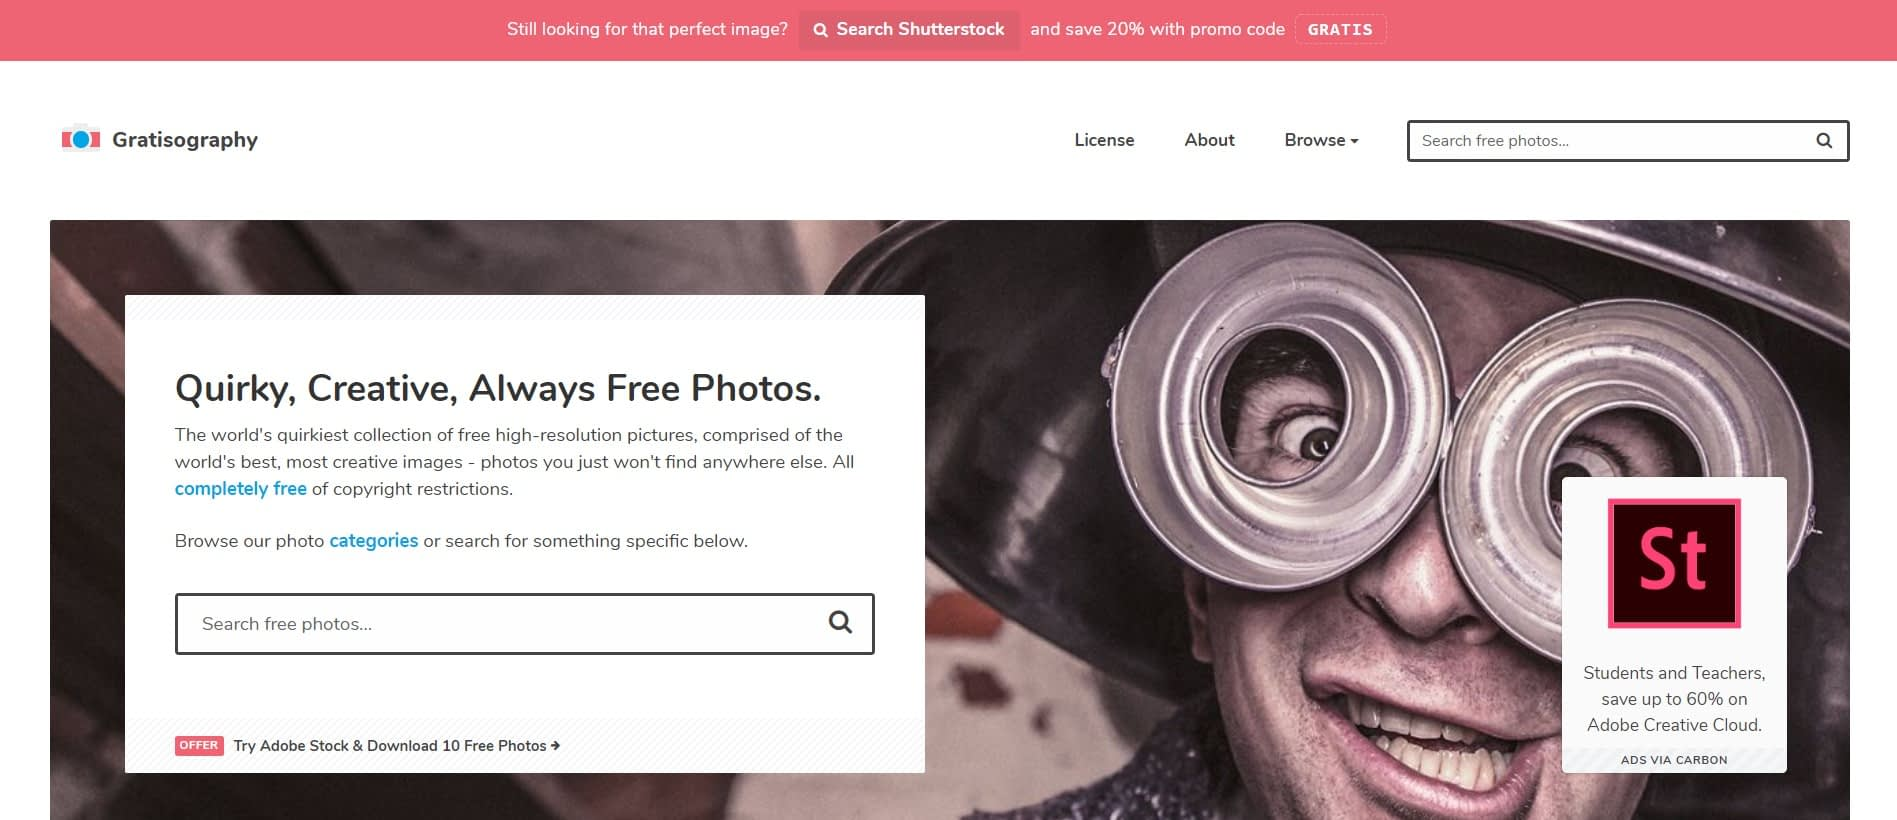 Best Free Stock Photo Sites: 21 Options With Breathtaking Imagery